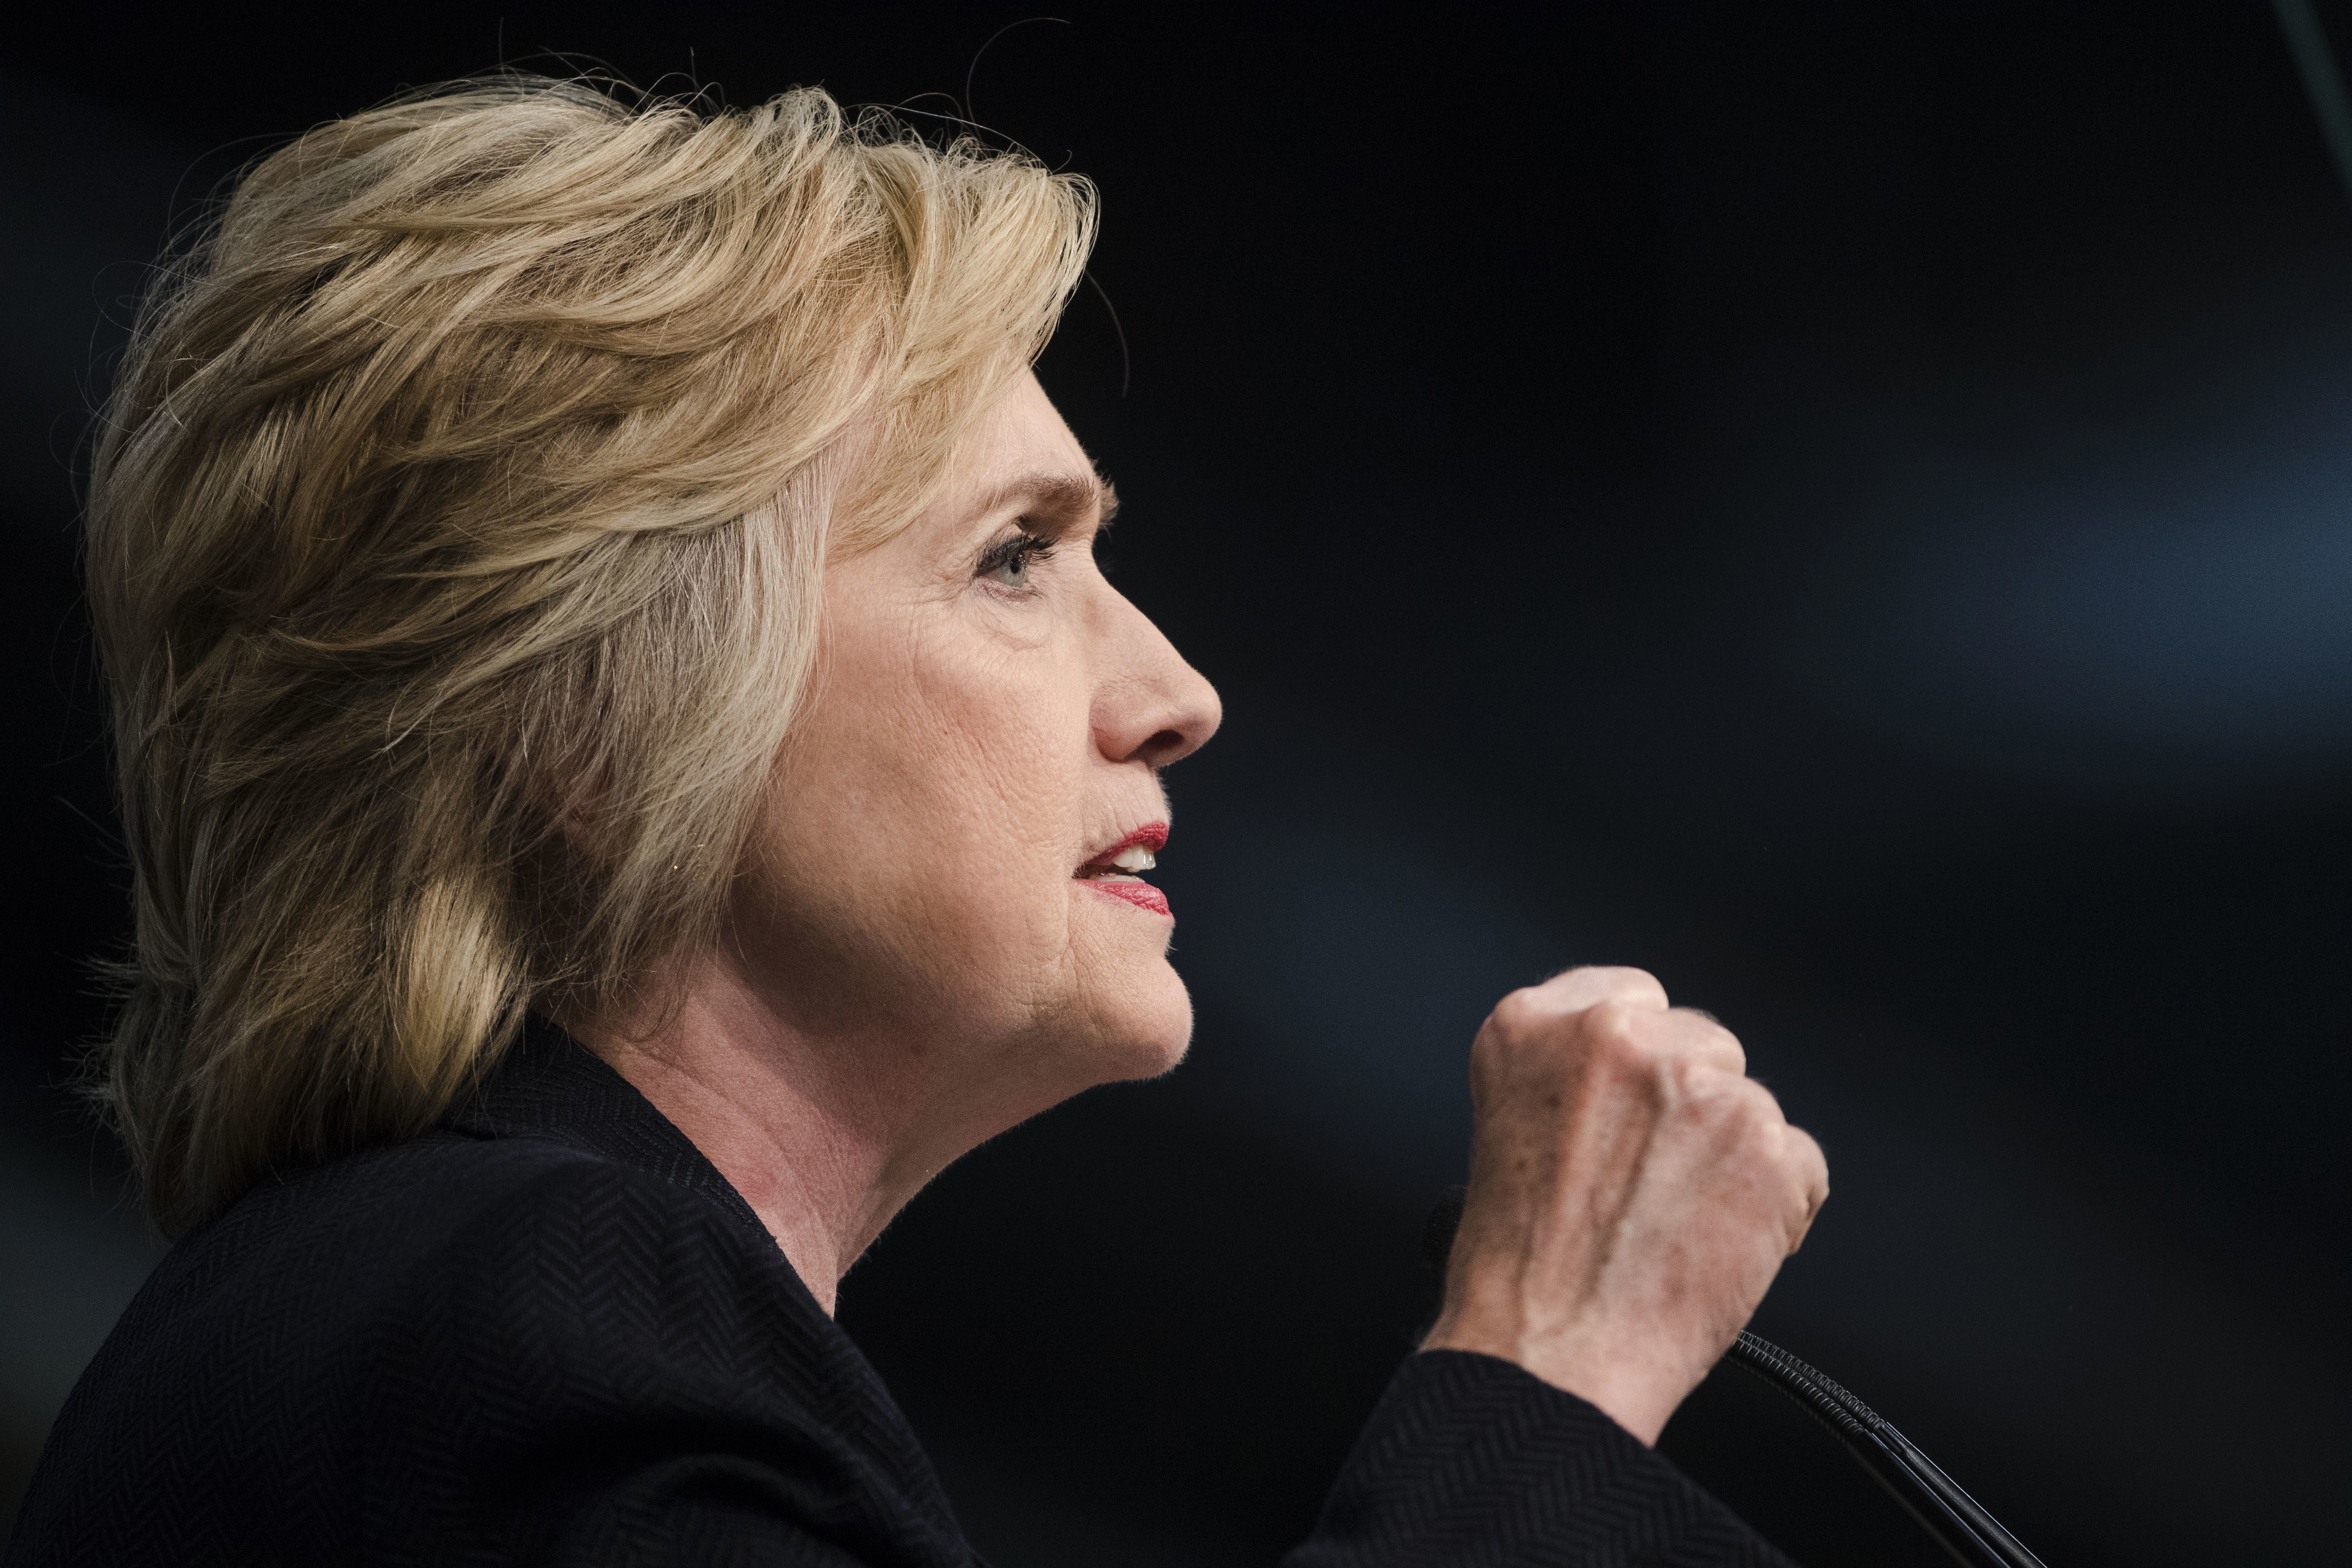 Clinton Defends Public Statements on Email Use, Contradicts FBI Investigation